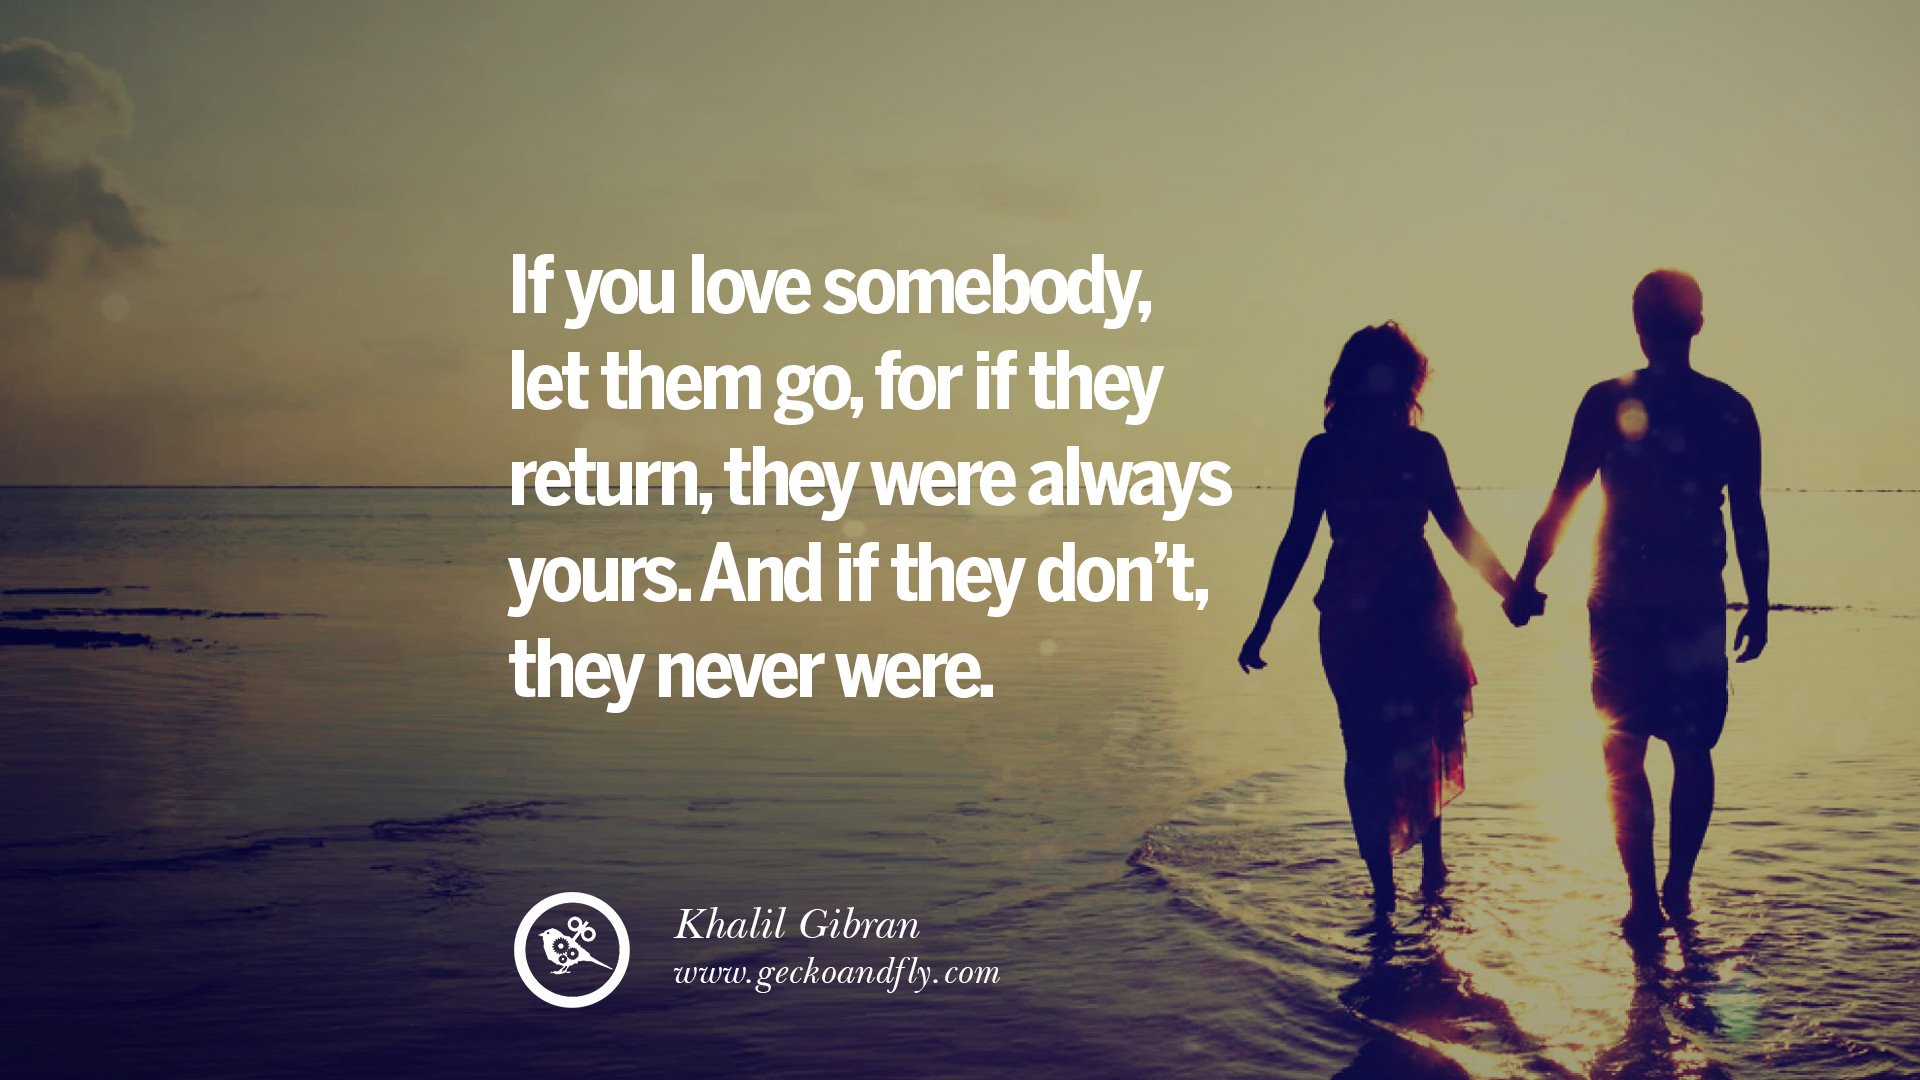 50 quotes about moving on and letting go of relationship